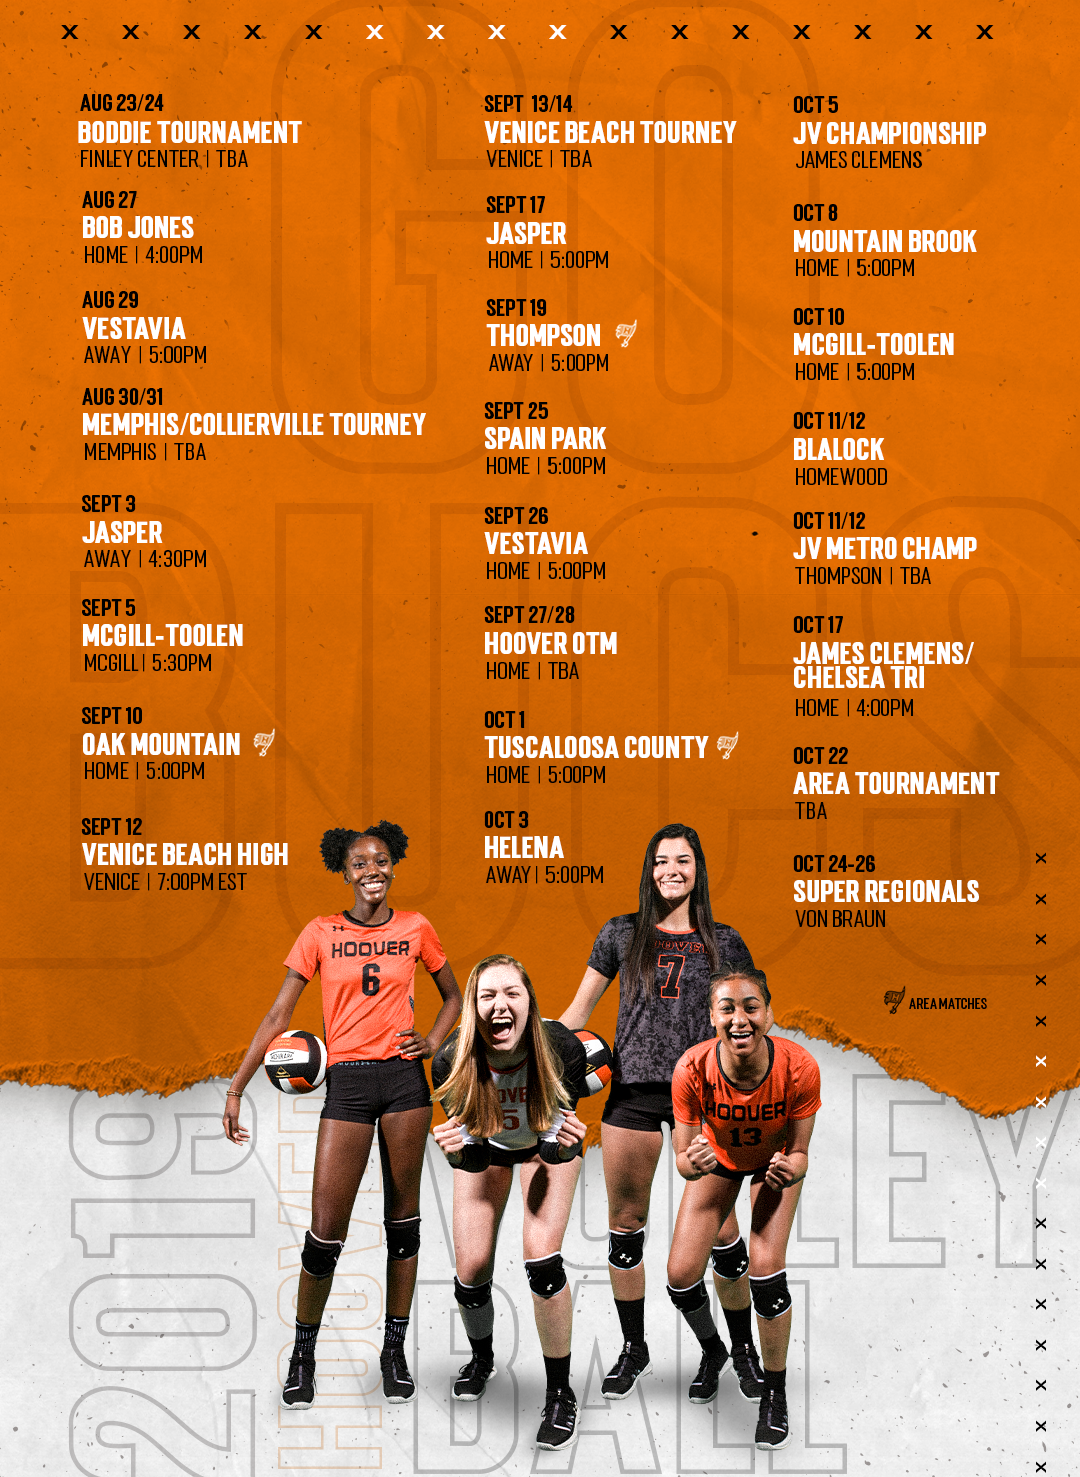 VolleyBall_Schedule.png